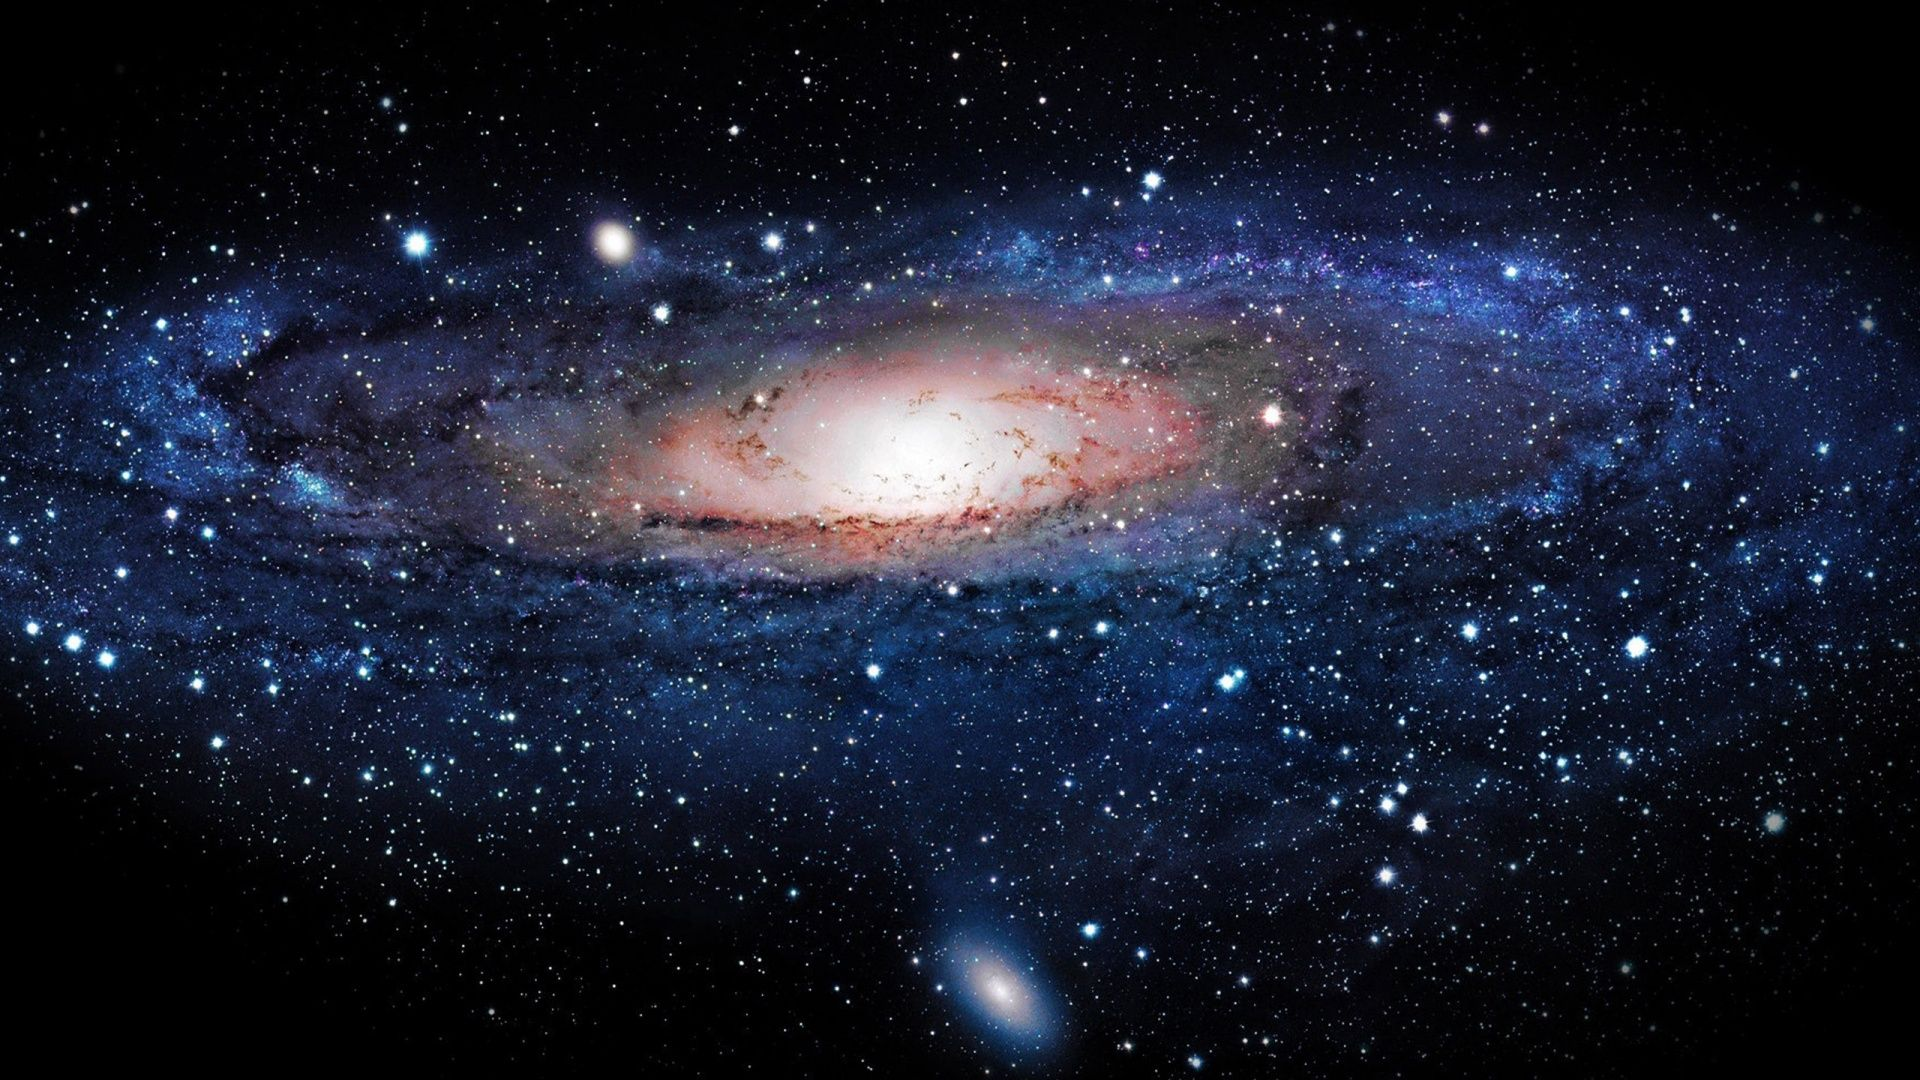 Galaxy Computer Wallpaper HD 1080p HD Desktop Wallpapers